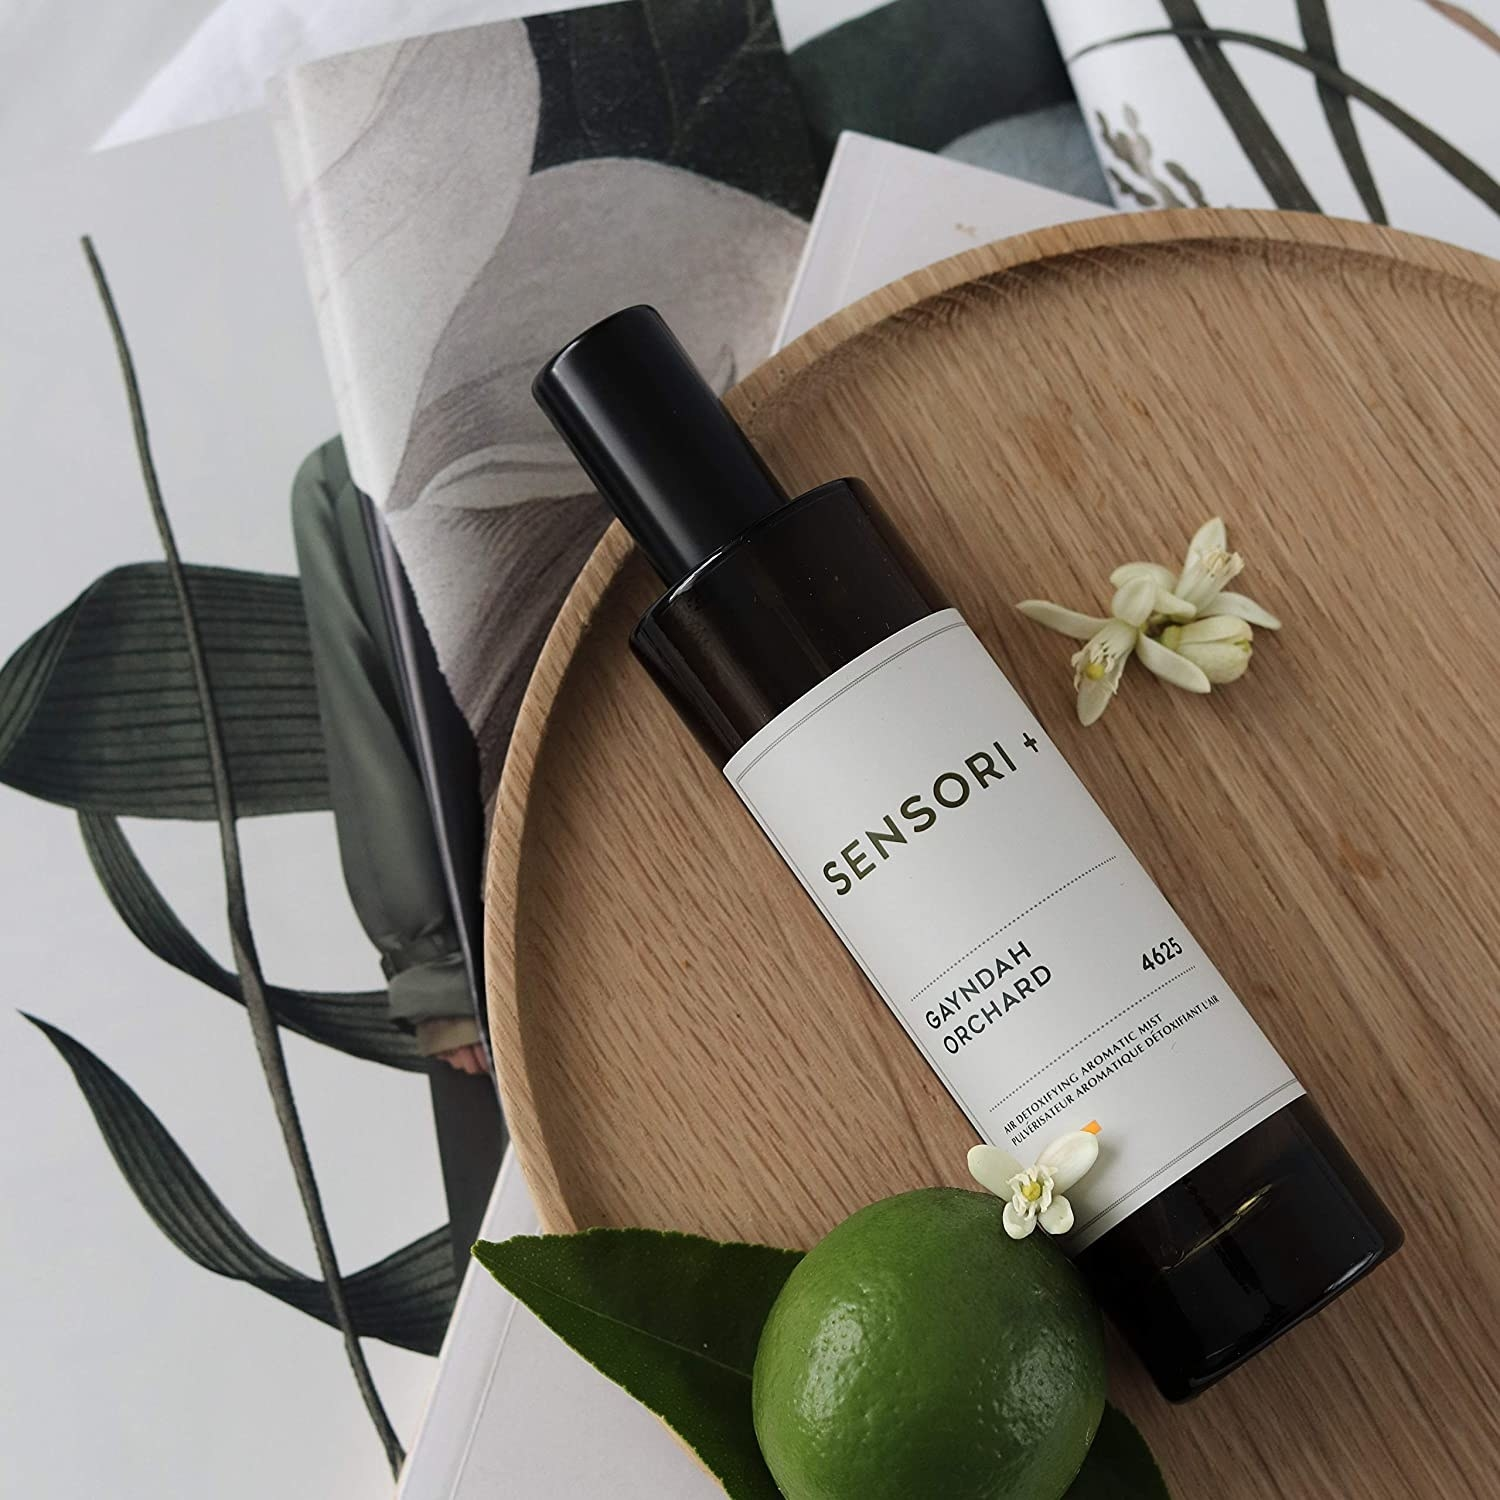 A bottle of Sensori air mist lies on a wooden plate surrounded by white flowers, limes and leaves